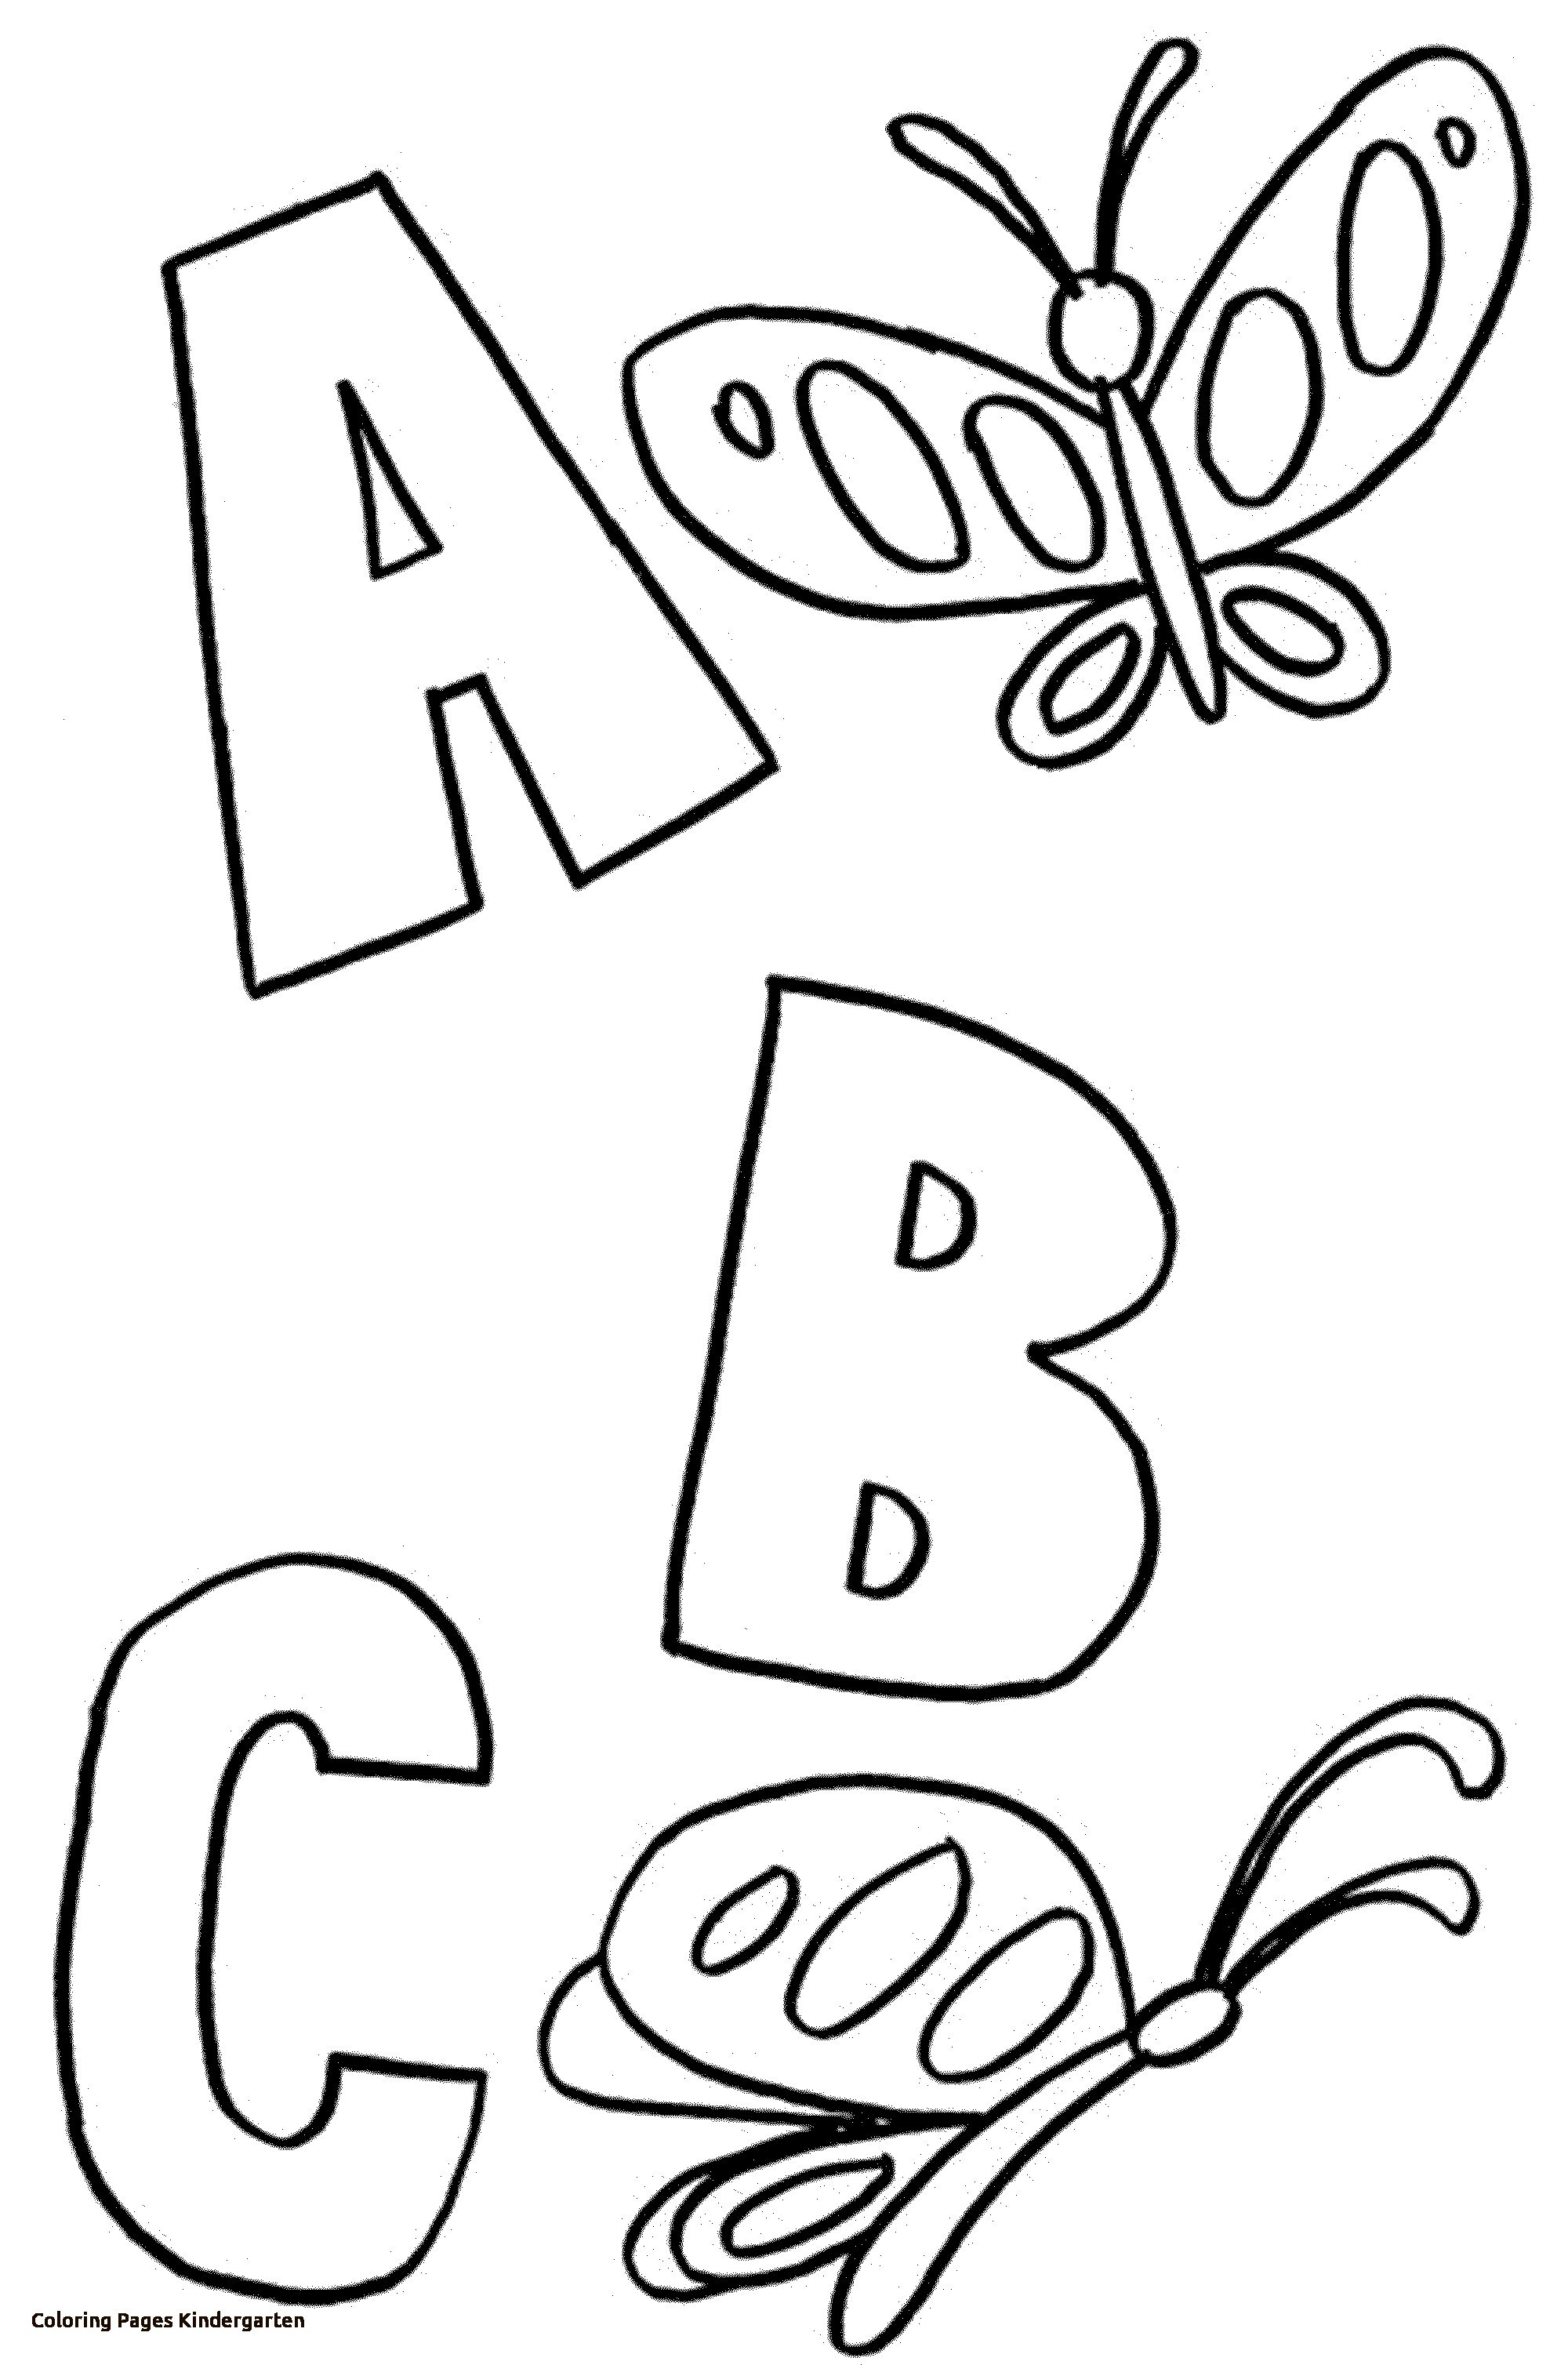 Crayola Fish Coloring Pages Coloring Free Coloring Pages Withintable Sheets For Kids Also